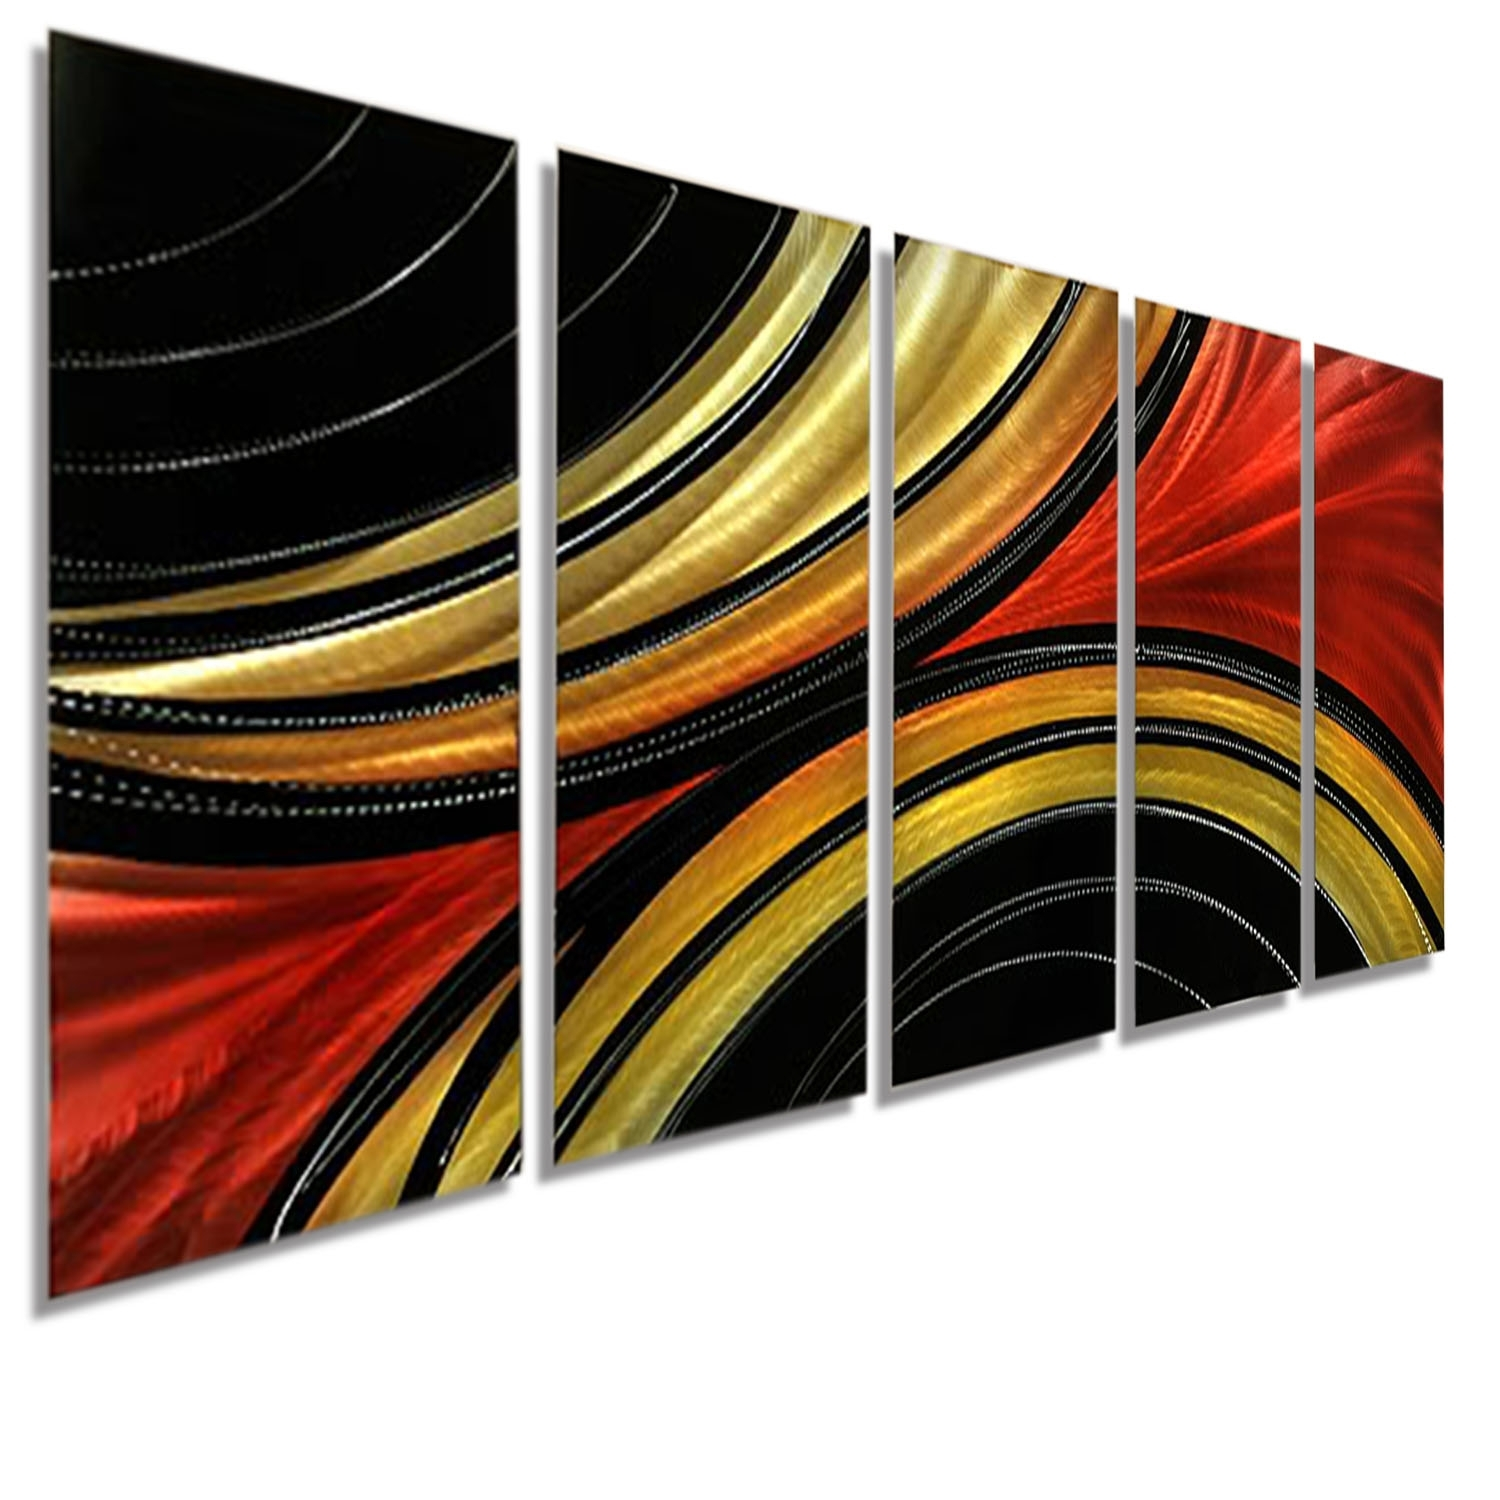 Solaris Xl – Massive Metal Abstract Red Black Gold Painting Wall Art With Newest Black And Gold Wall Art (View 18 of 20)